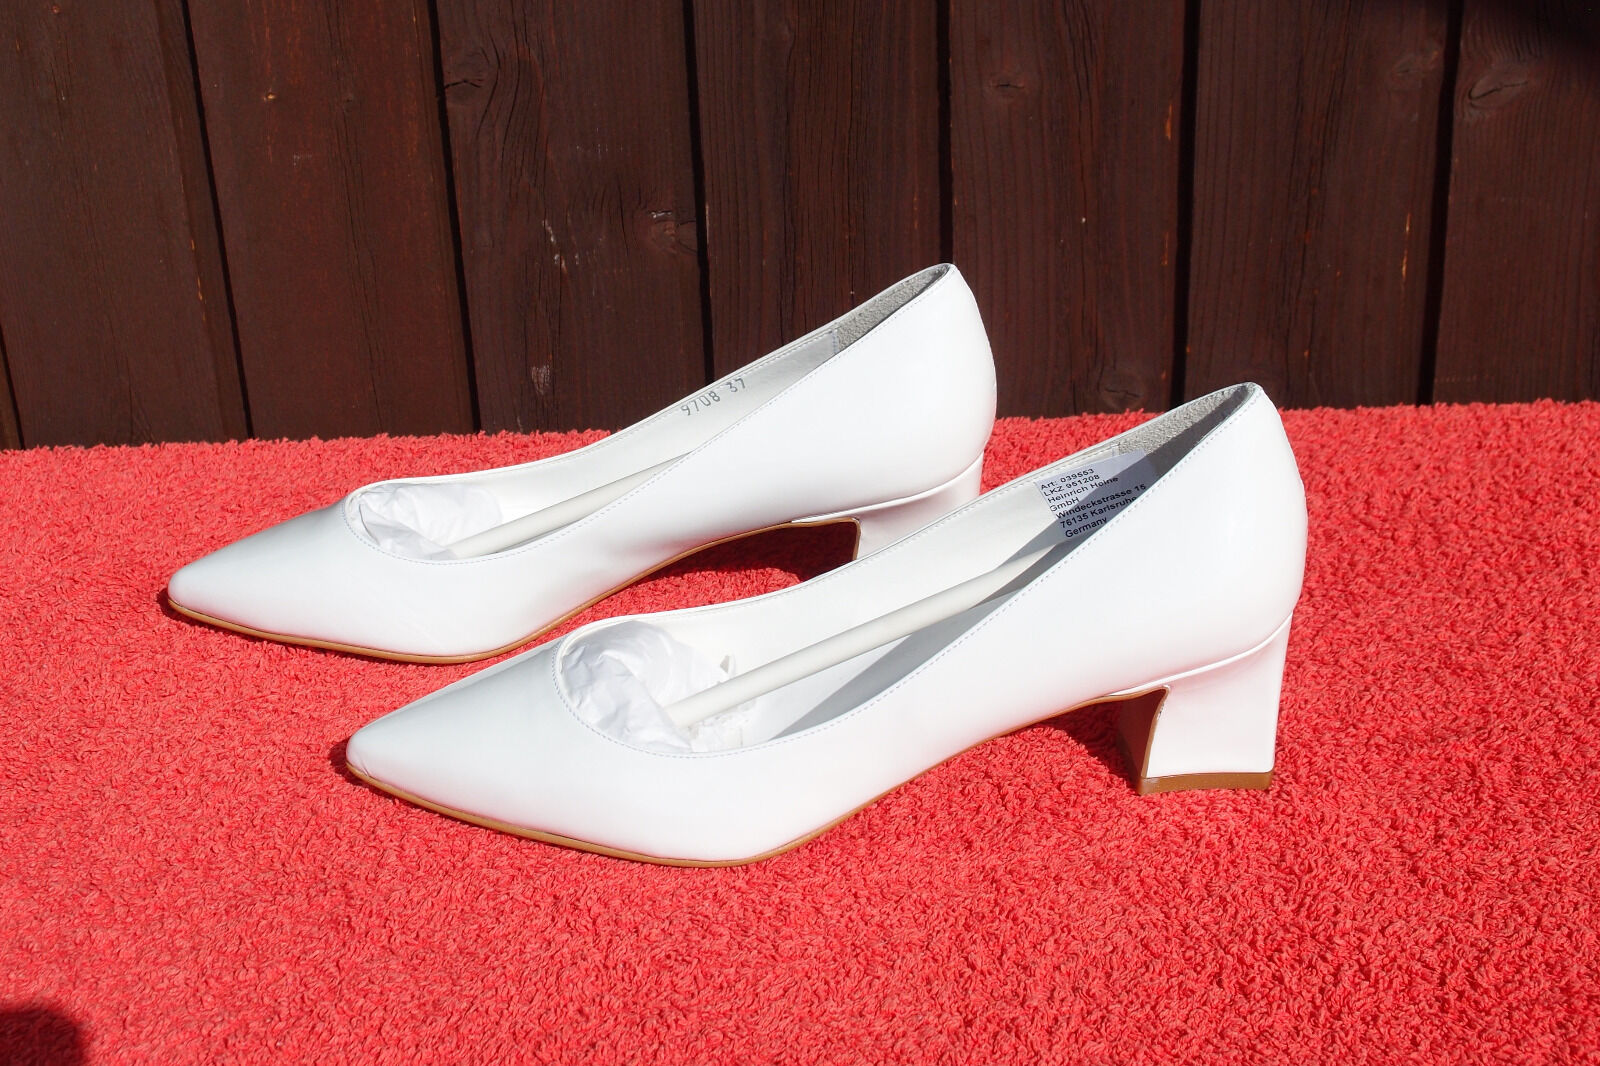 Echt Lack Leder Damen Pumps / Lack Echt Braut Heels in Weiß Best Connections by HEINE 36 a8c3aa